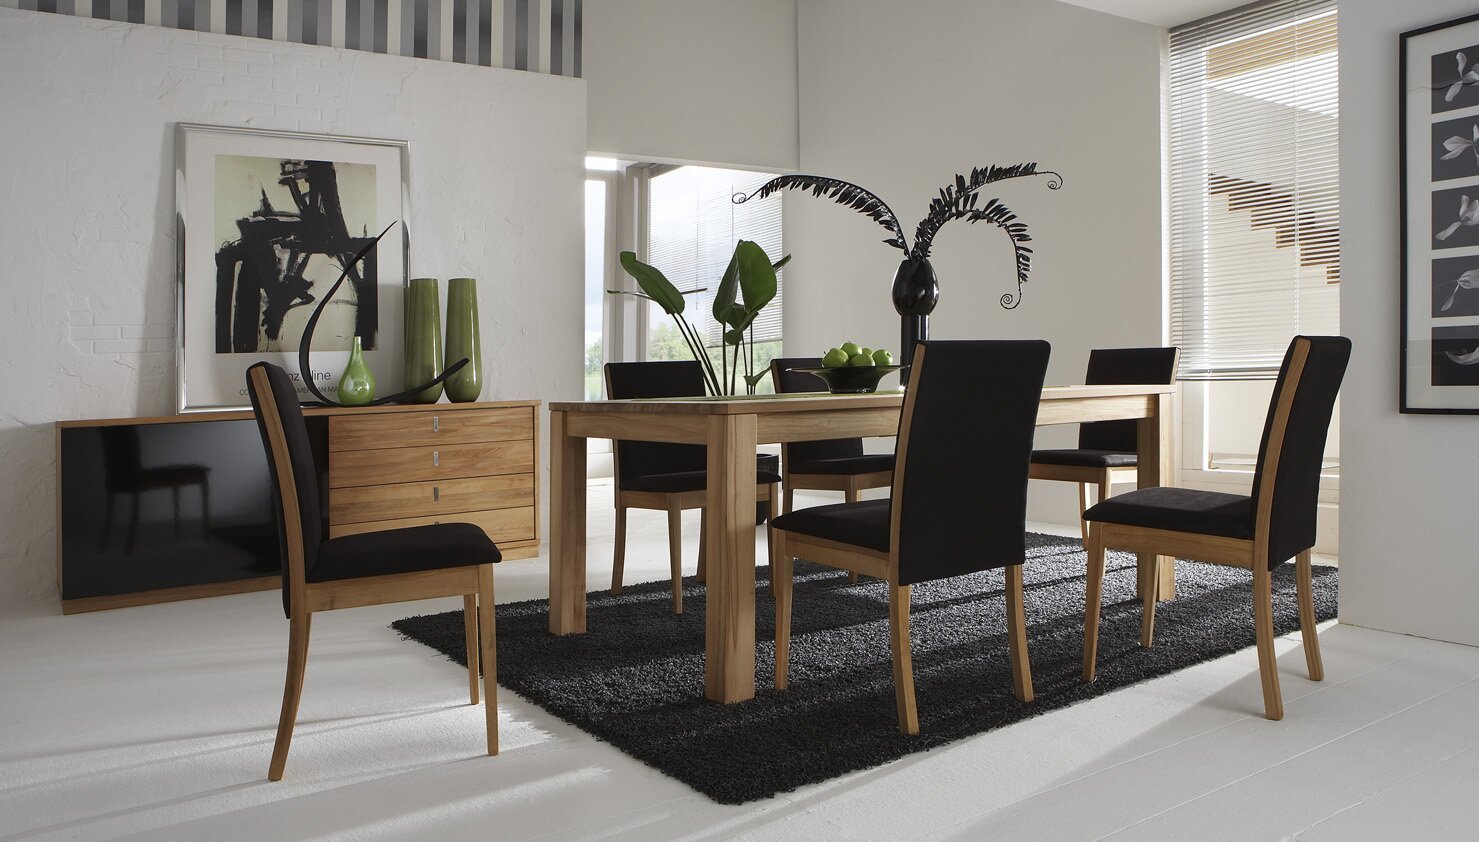 23 modern dining room examples with photos for Modern dinning room table